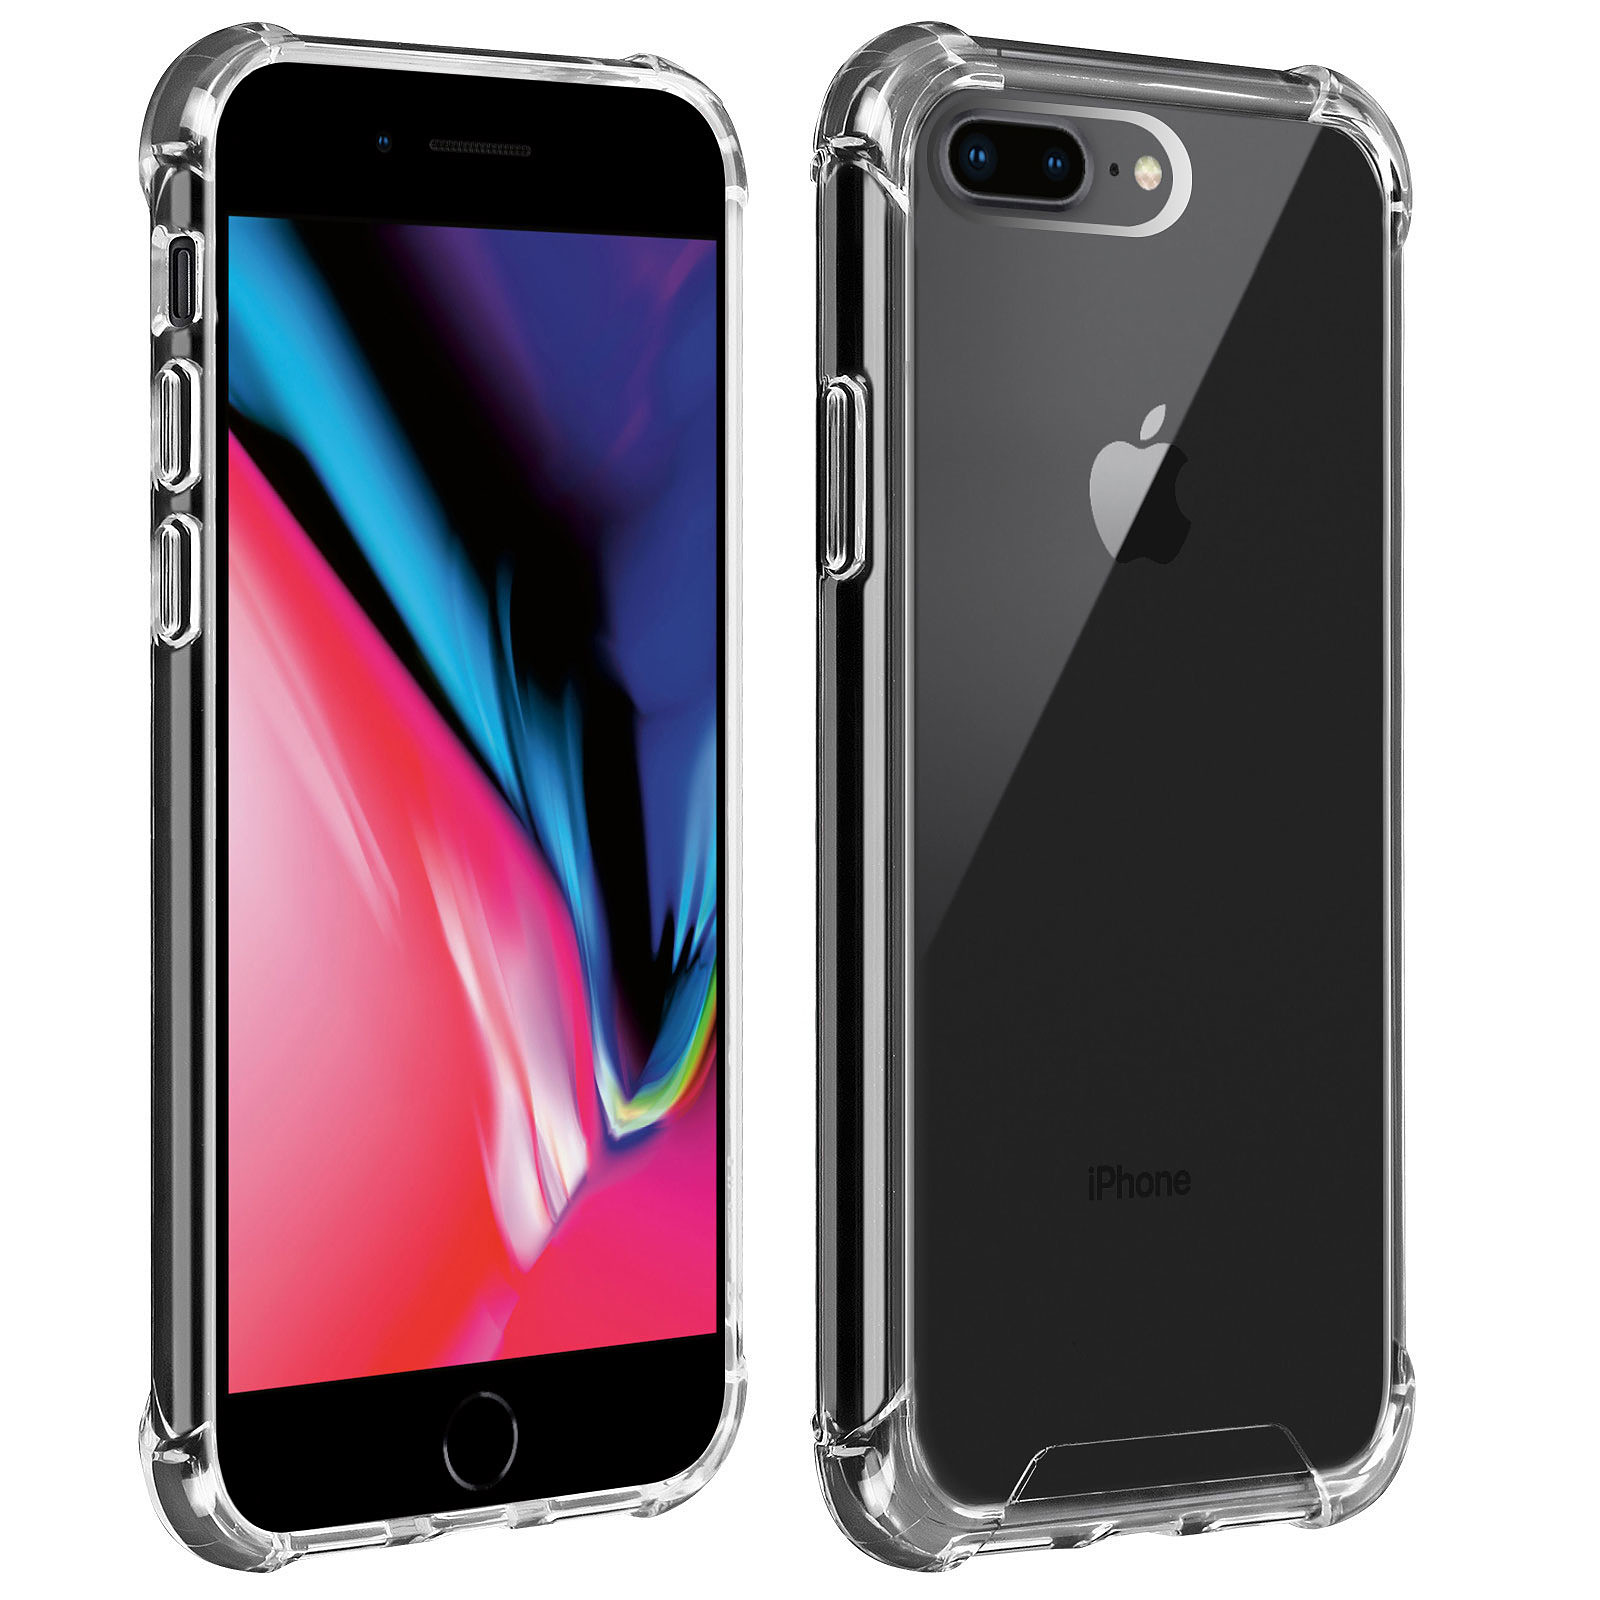 Akashi Coque TPU Angles Renforcés Apple iPhone 7 / 8 Plus